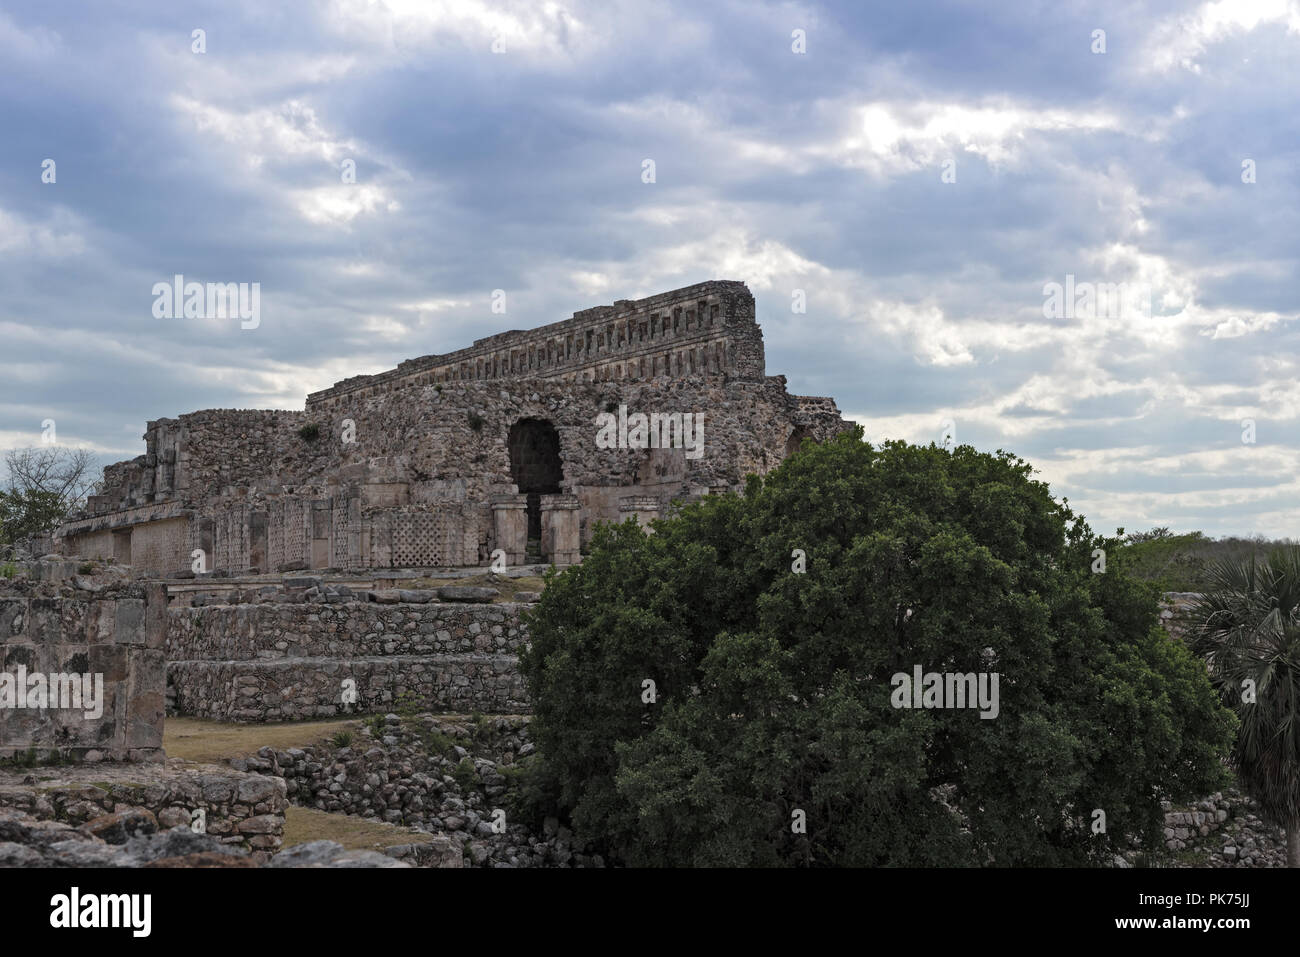 The ruins of the ancient Mayan city of Kabah, Yucatan, Mexico. - Stock Image